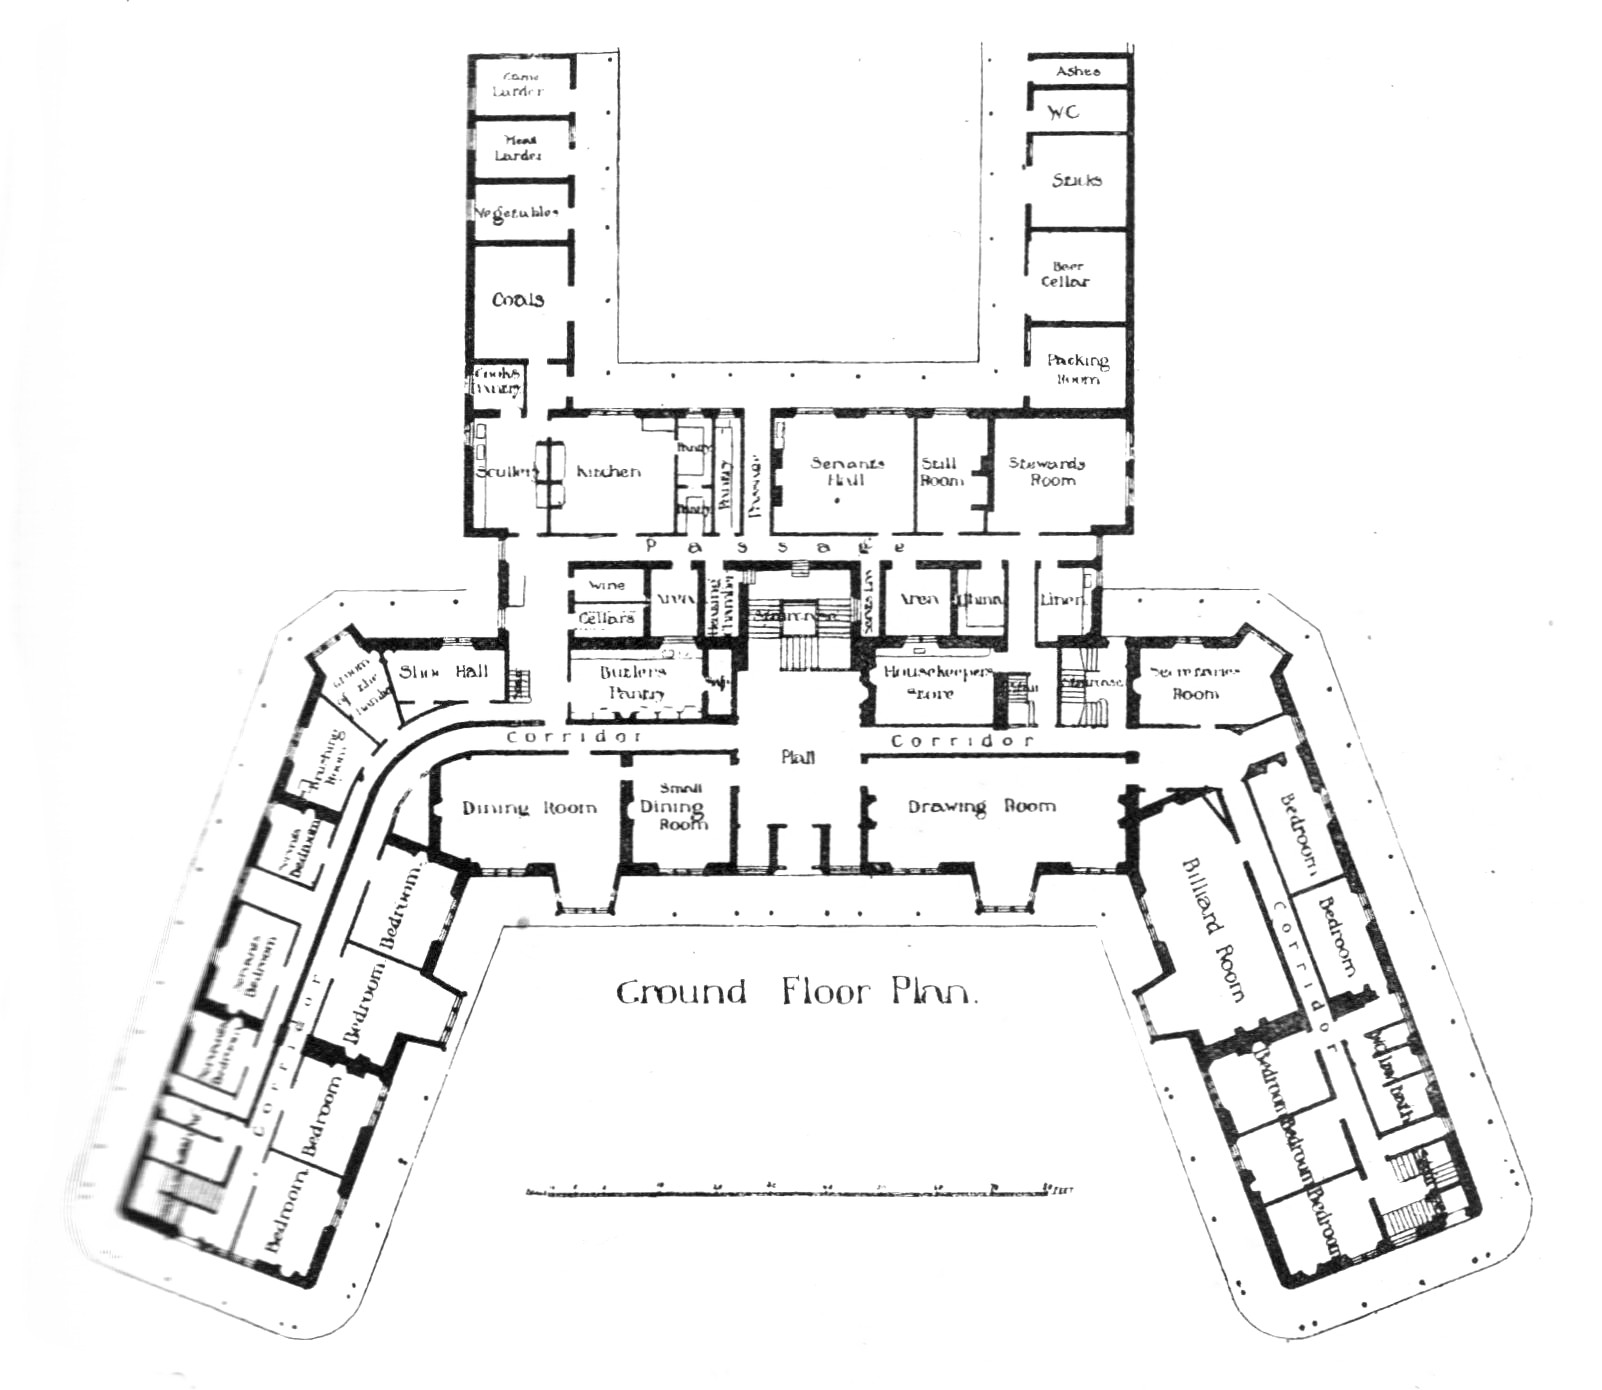 File:Mar Lodge, floor plan, fig 30 (Modern Homes, 1909).jpg ... on modern townhouse bathrooms, philippines house designs and floor plans, 2 story condo floor plans, french chateau floor plans, duplex floor plans, beach townhouse plans, earthship floor plans, ranch floor plans, wolfson villa floor plans, rural farmhouse floor plans, commercial property floor plans, modern townhouse kitchens, new york city brownstone floor plans, 3 bedrooms floor plans, modern townhouse elevations, open coastal floor plans, modern townhouse seattle, front porch floor plans,